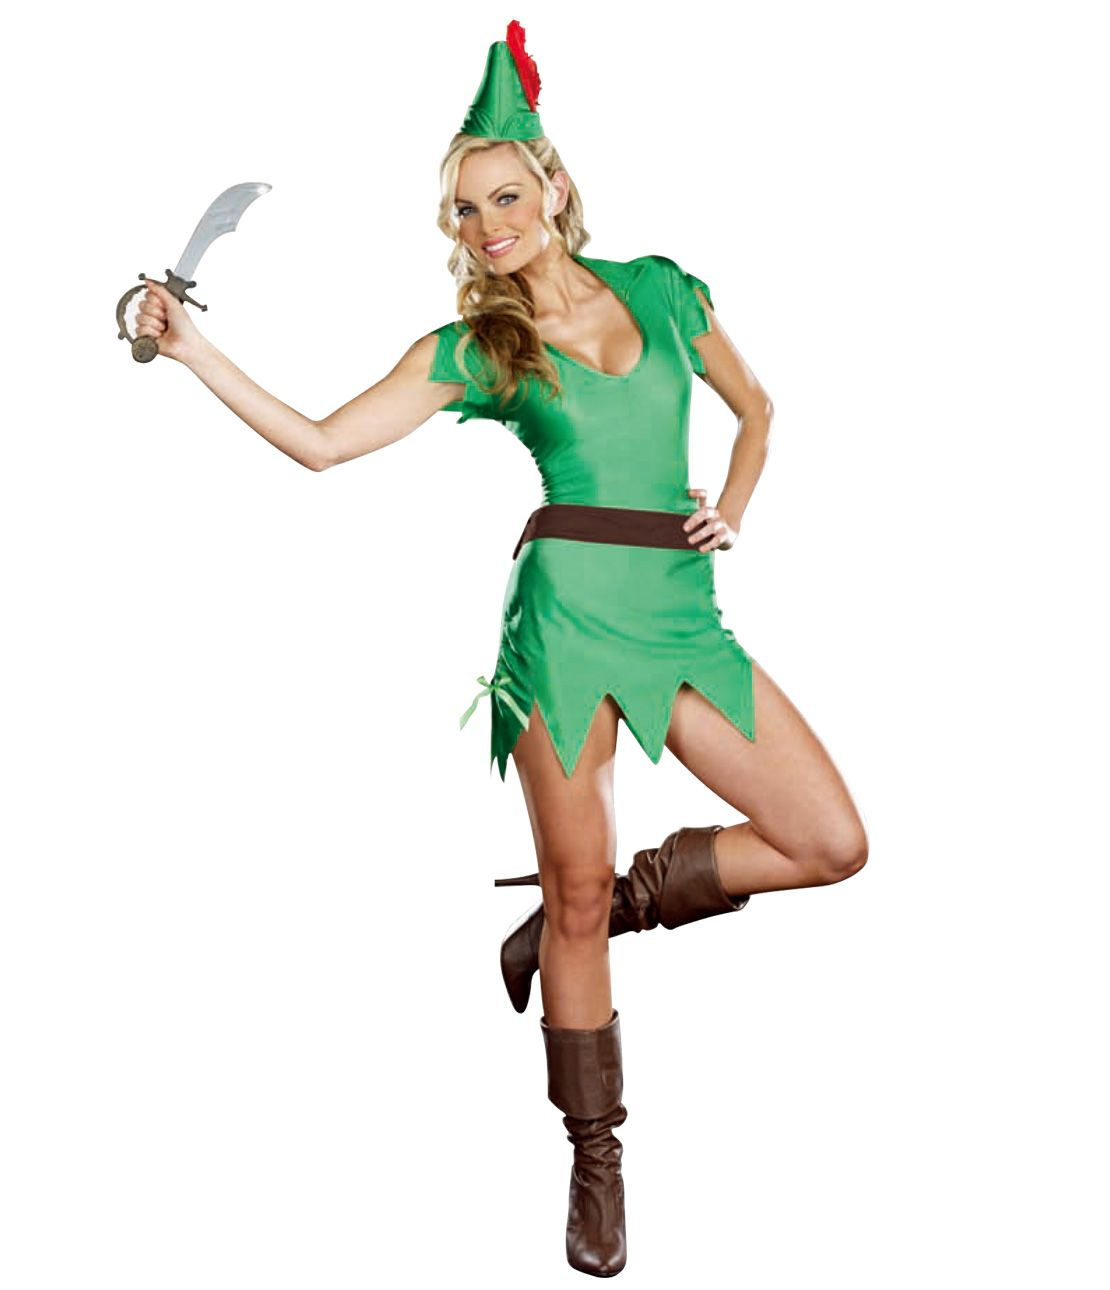 Adventure Girl Costume Set (Dress, Hat, Belt, Fake Sword)